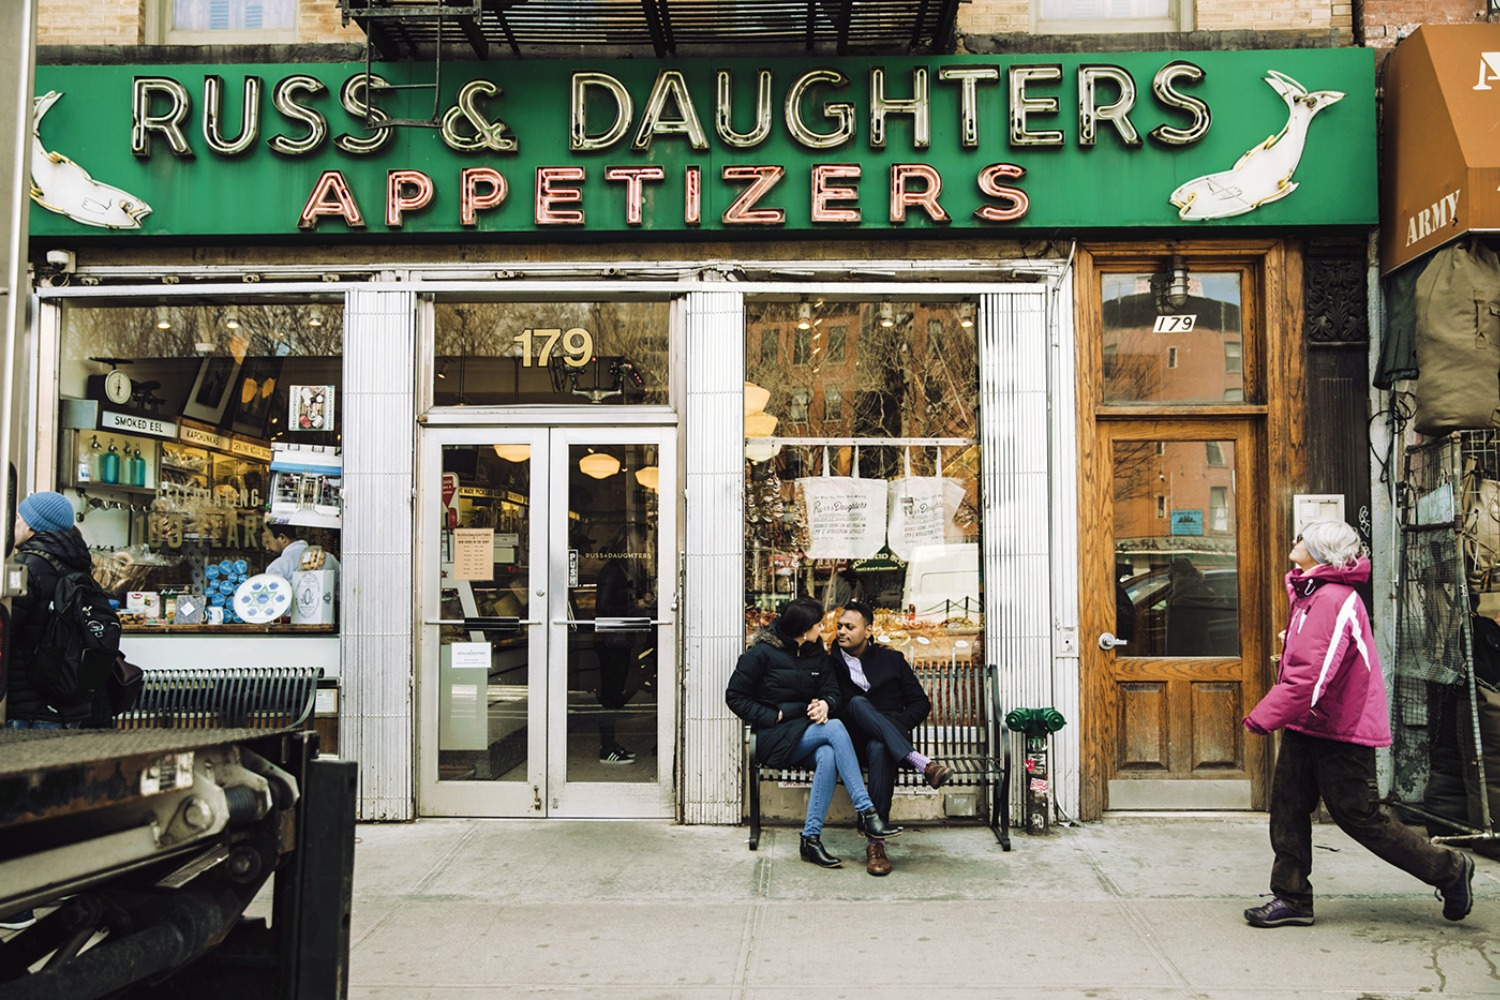 Russ and Daughters appetizers